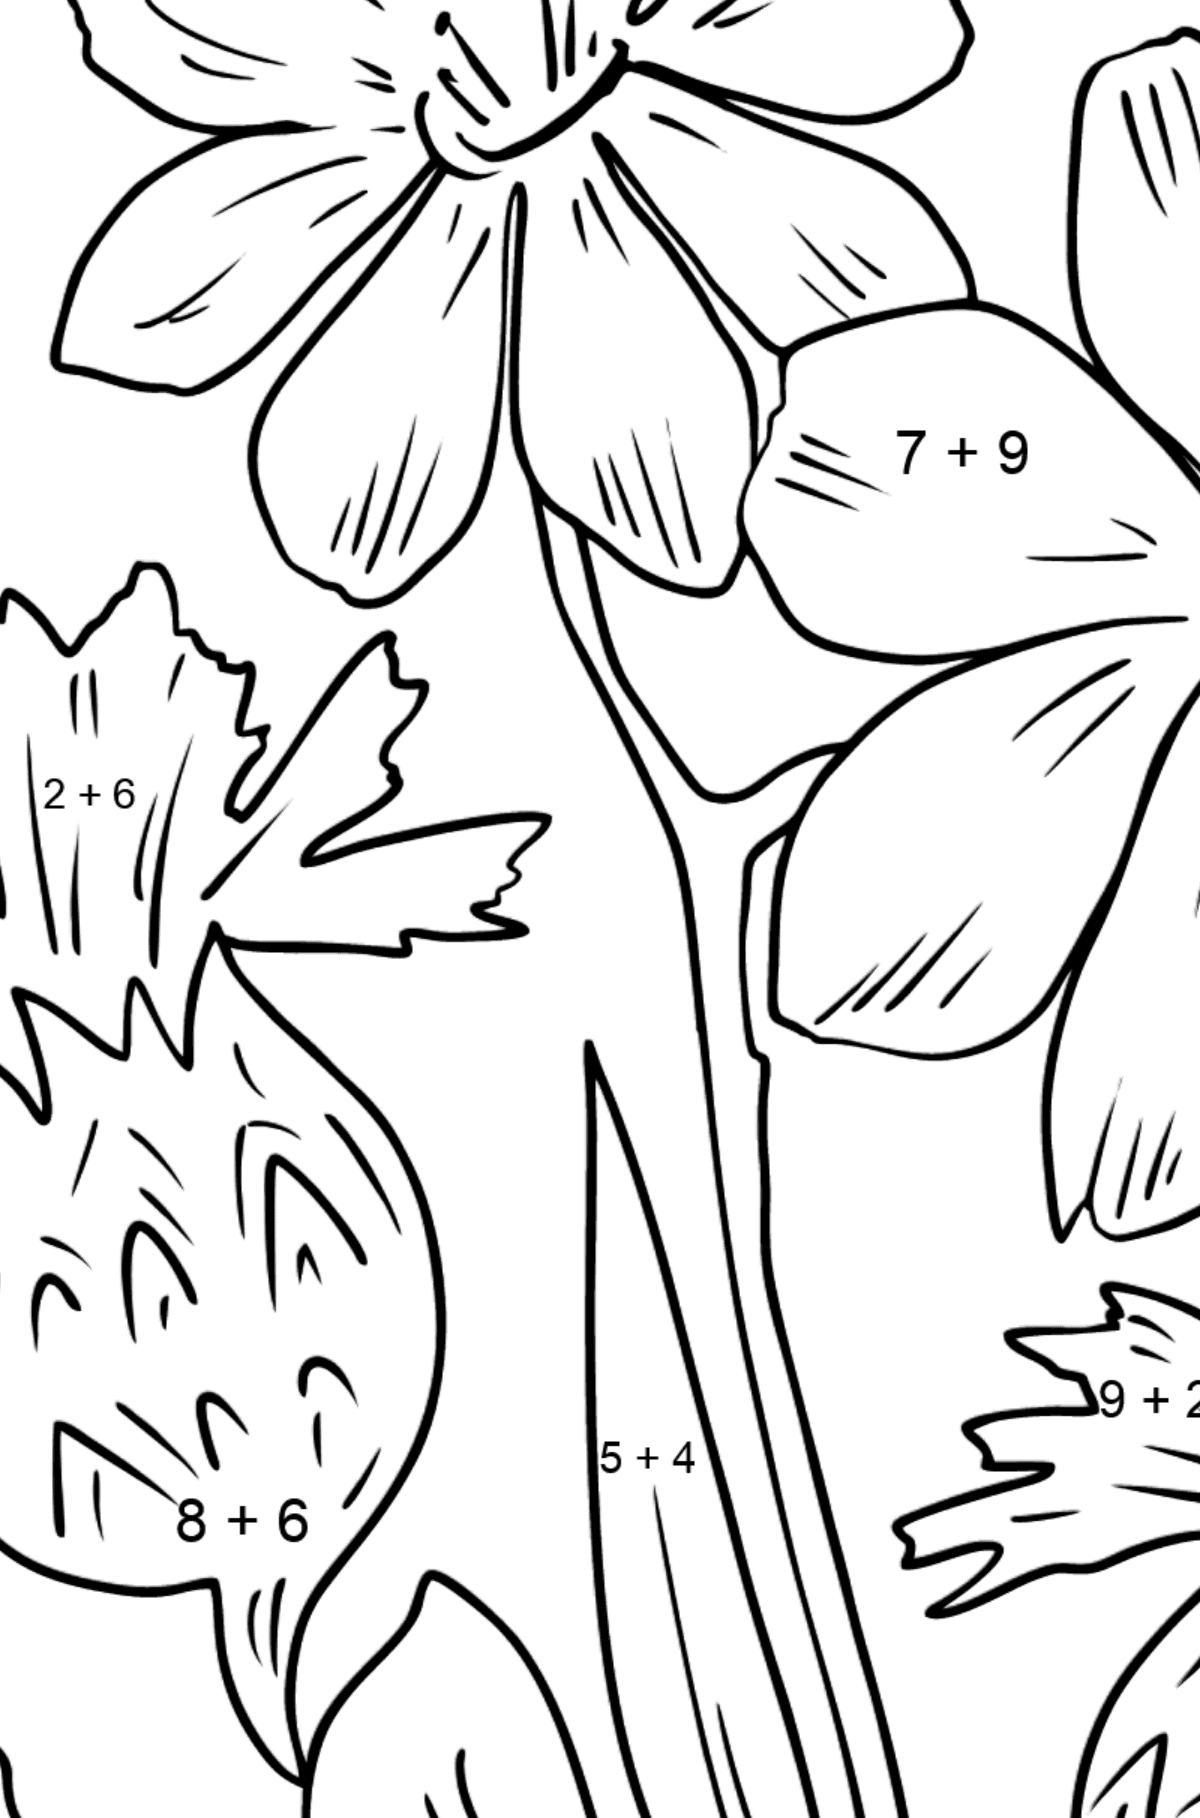 Flower Coloring Page - flowers in the meadow - Math Coloring - Addition for Kids